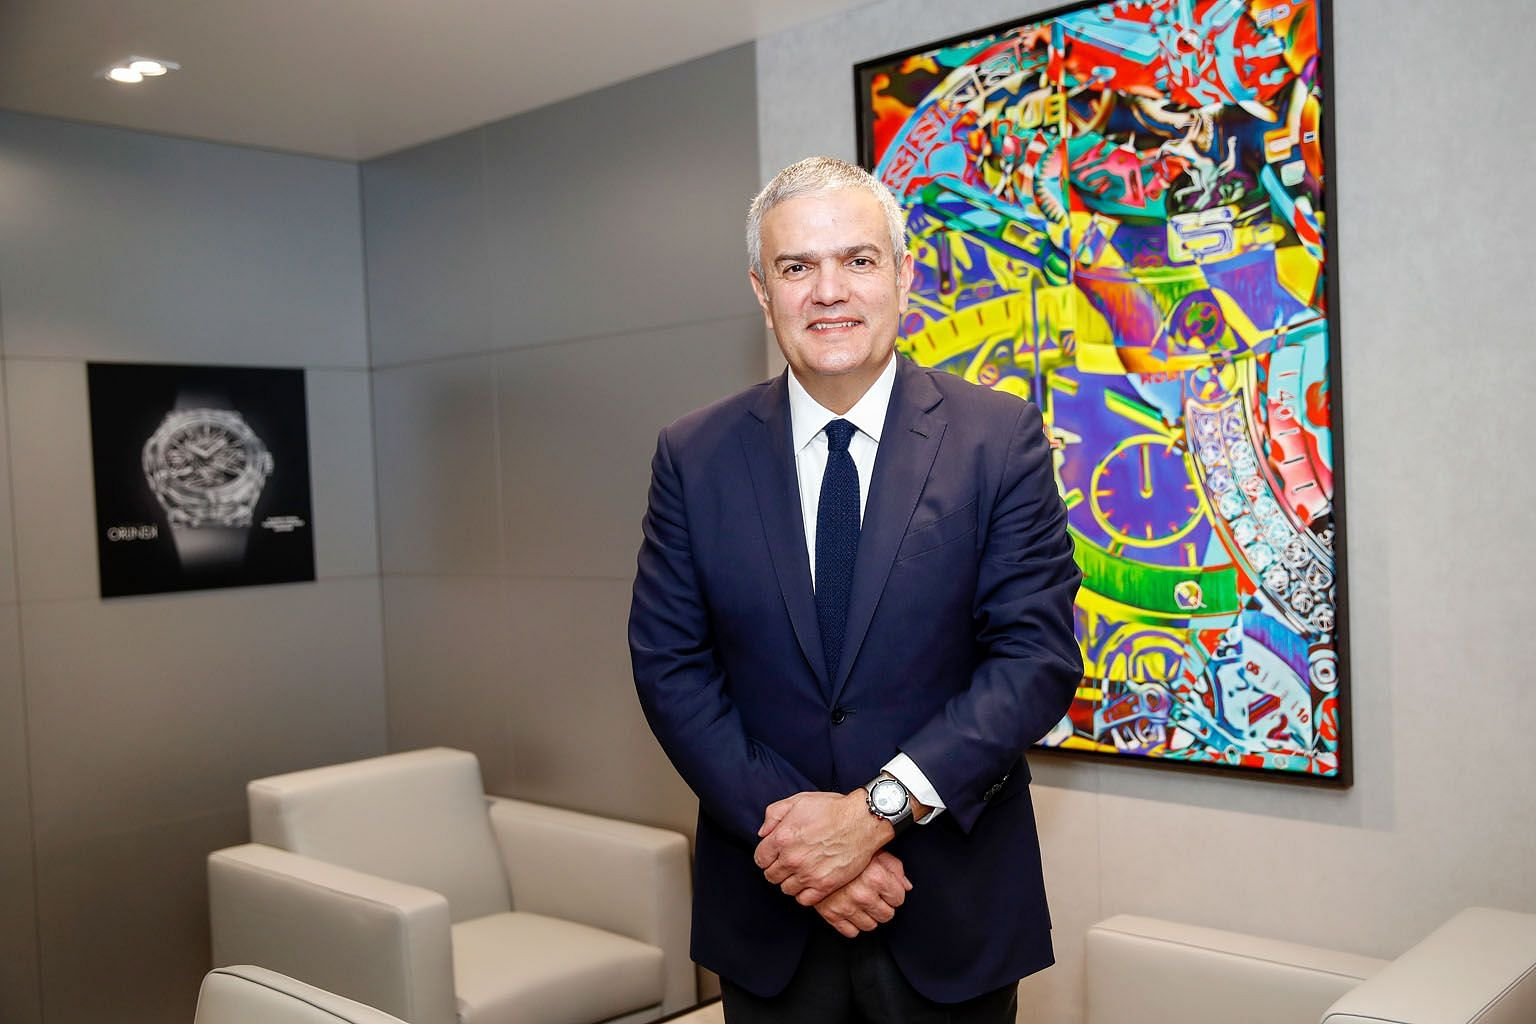 Hublot's chief executive officer Ricardo Guadalupe says the luxury watchmaker has noticed a fall in the number of Chinese travelling to the Umited States, and less traffic at its stores.